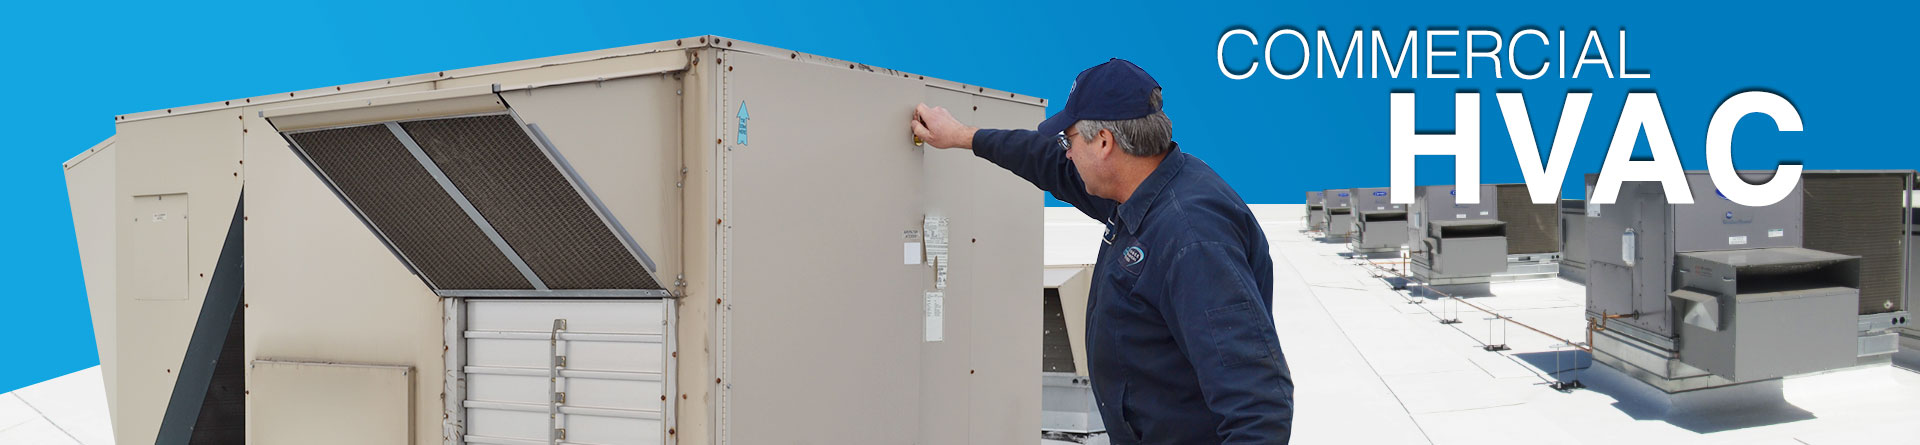 Alliance Mechanical Service's technician provide repair, service, and installation of roof-top commercial HVAC systems.